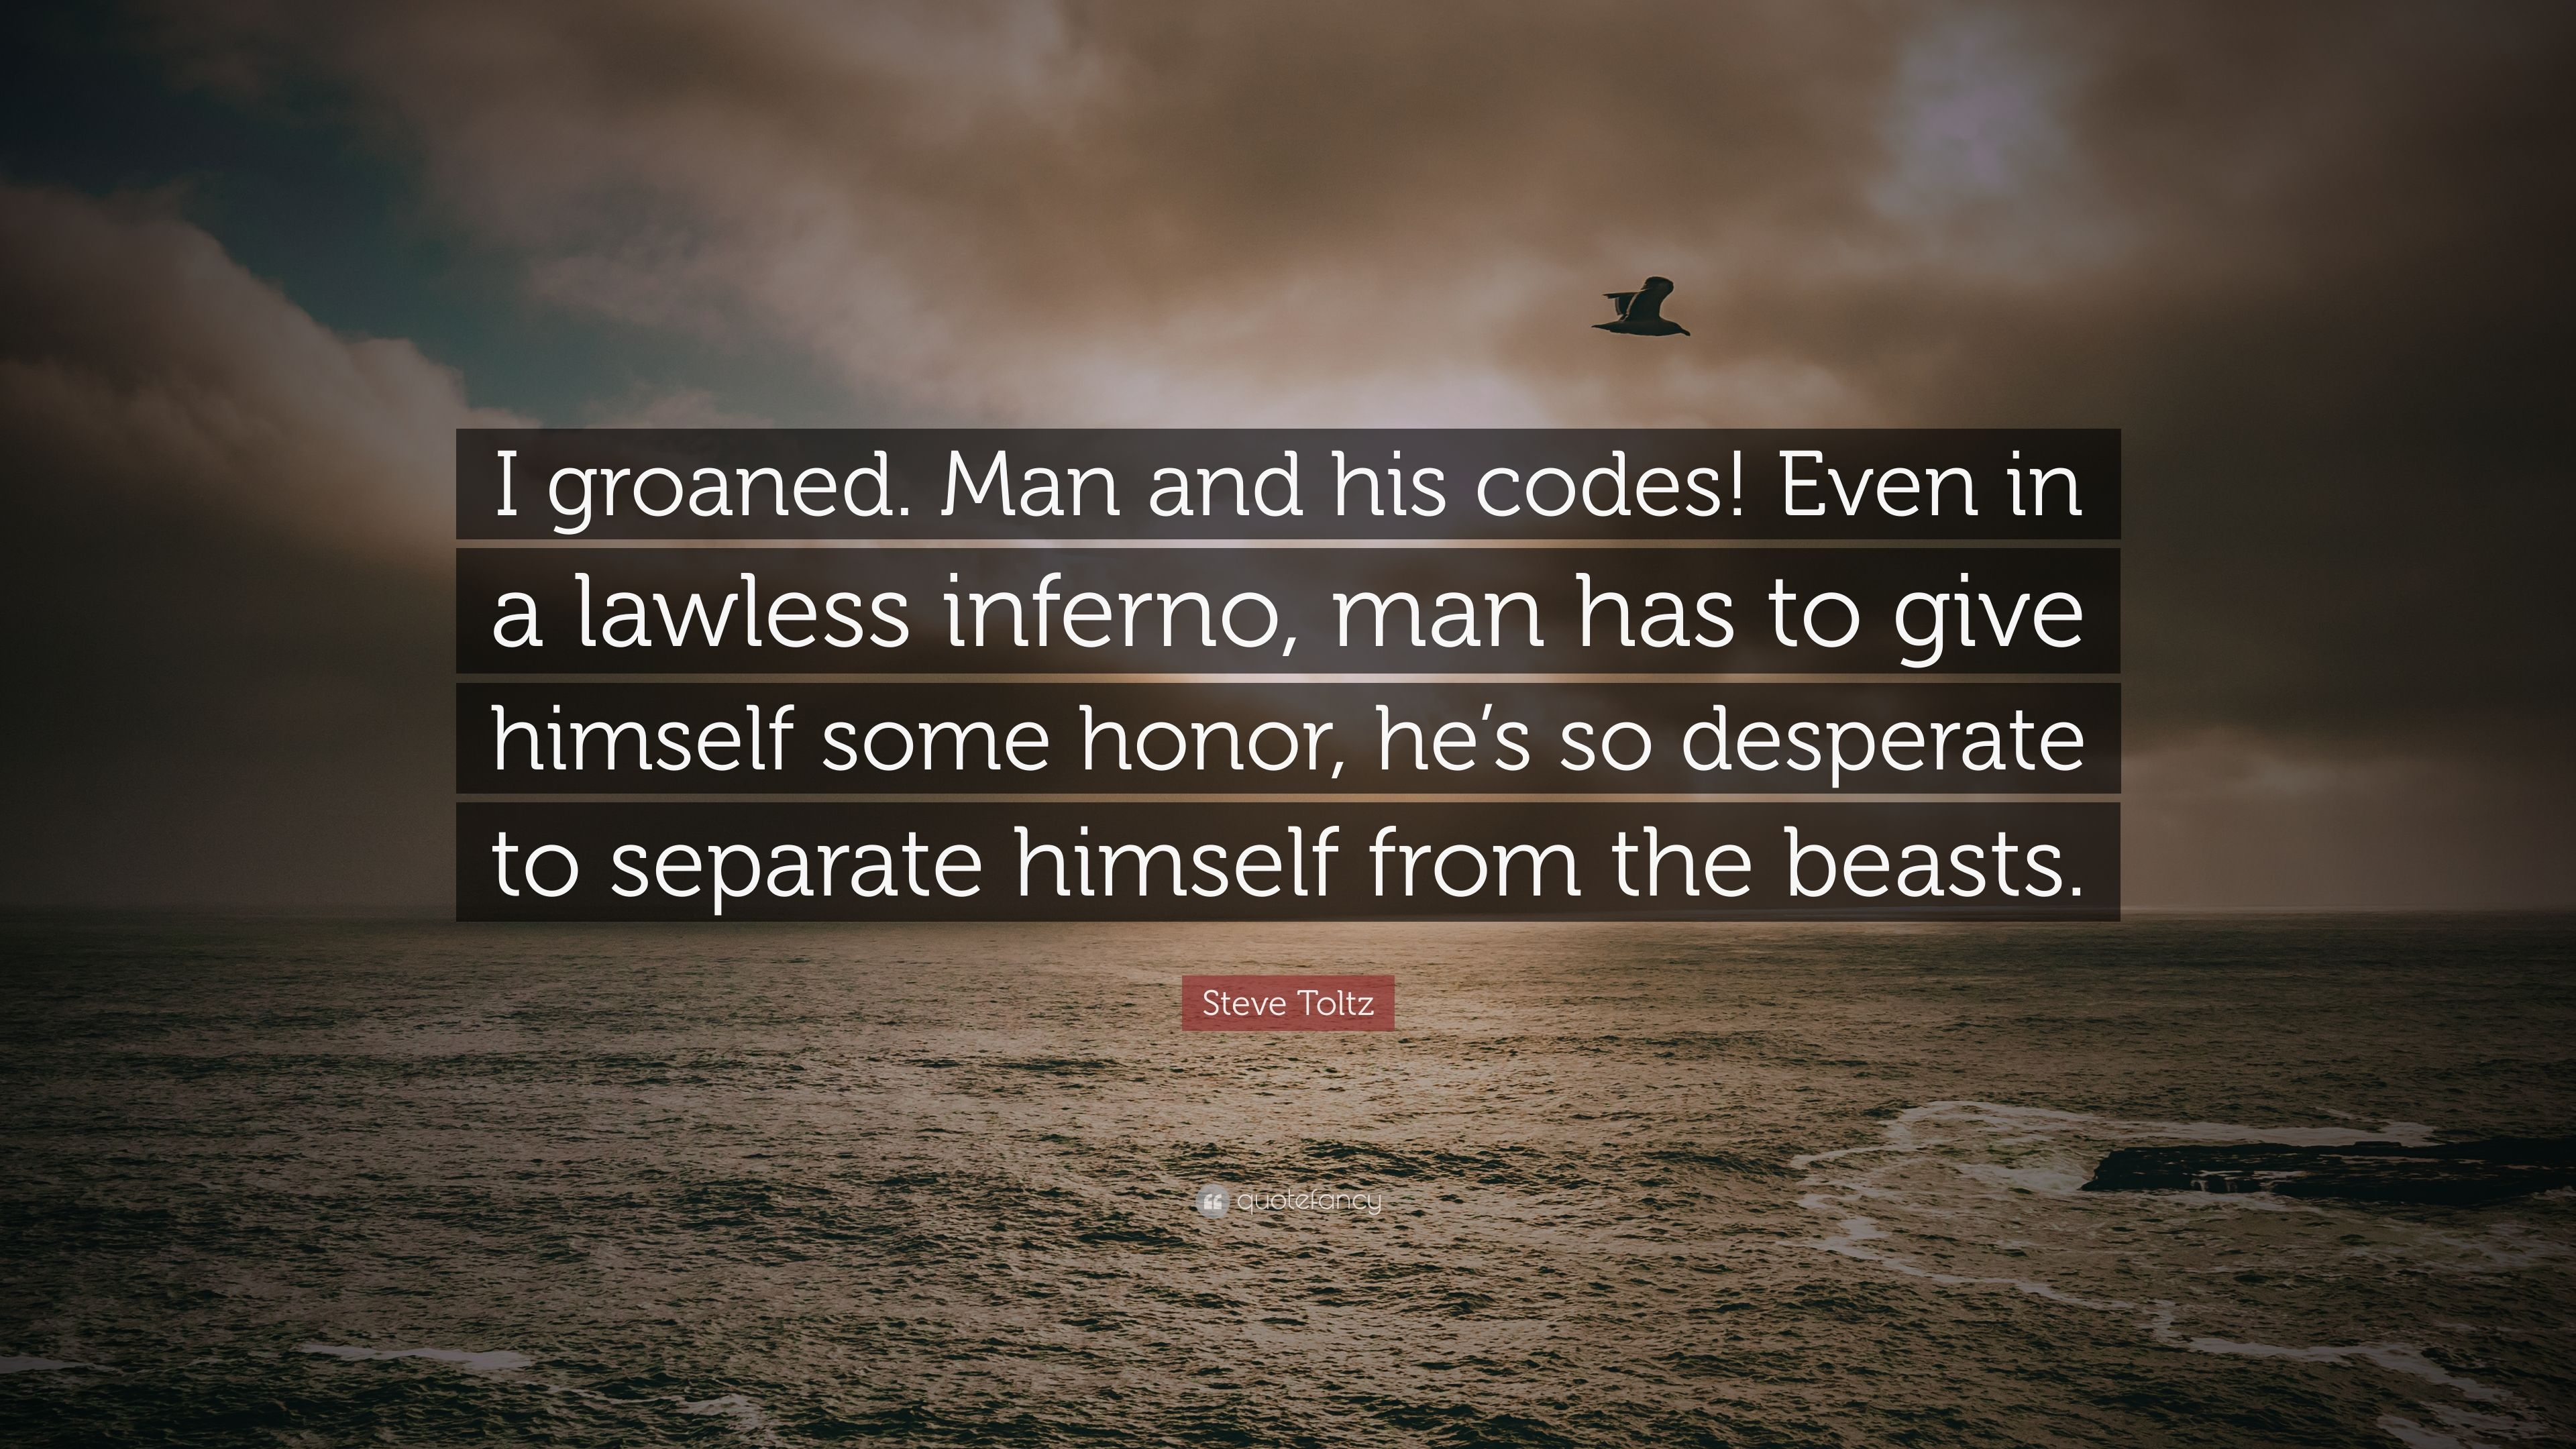 Steve Toltz Quote I Groaned Man And His Codes Even In A Lawless Inferno Man Has To Give Himself Some Honor He S So Desperate To Separa 7 Wallpapers Quotefancy | meaning, pronunciation, translations and examples. steve toltz quote i groaned man and